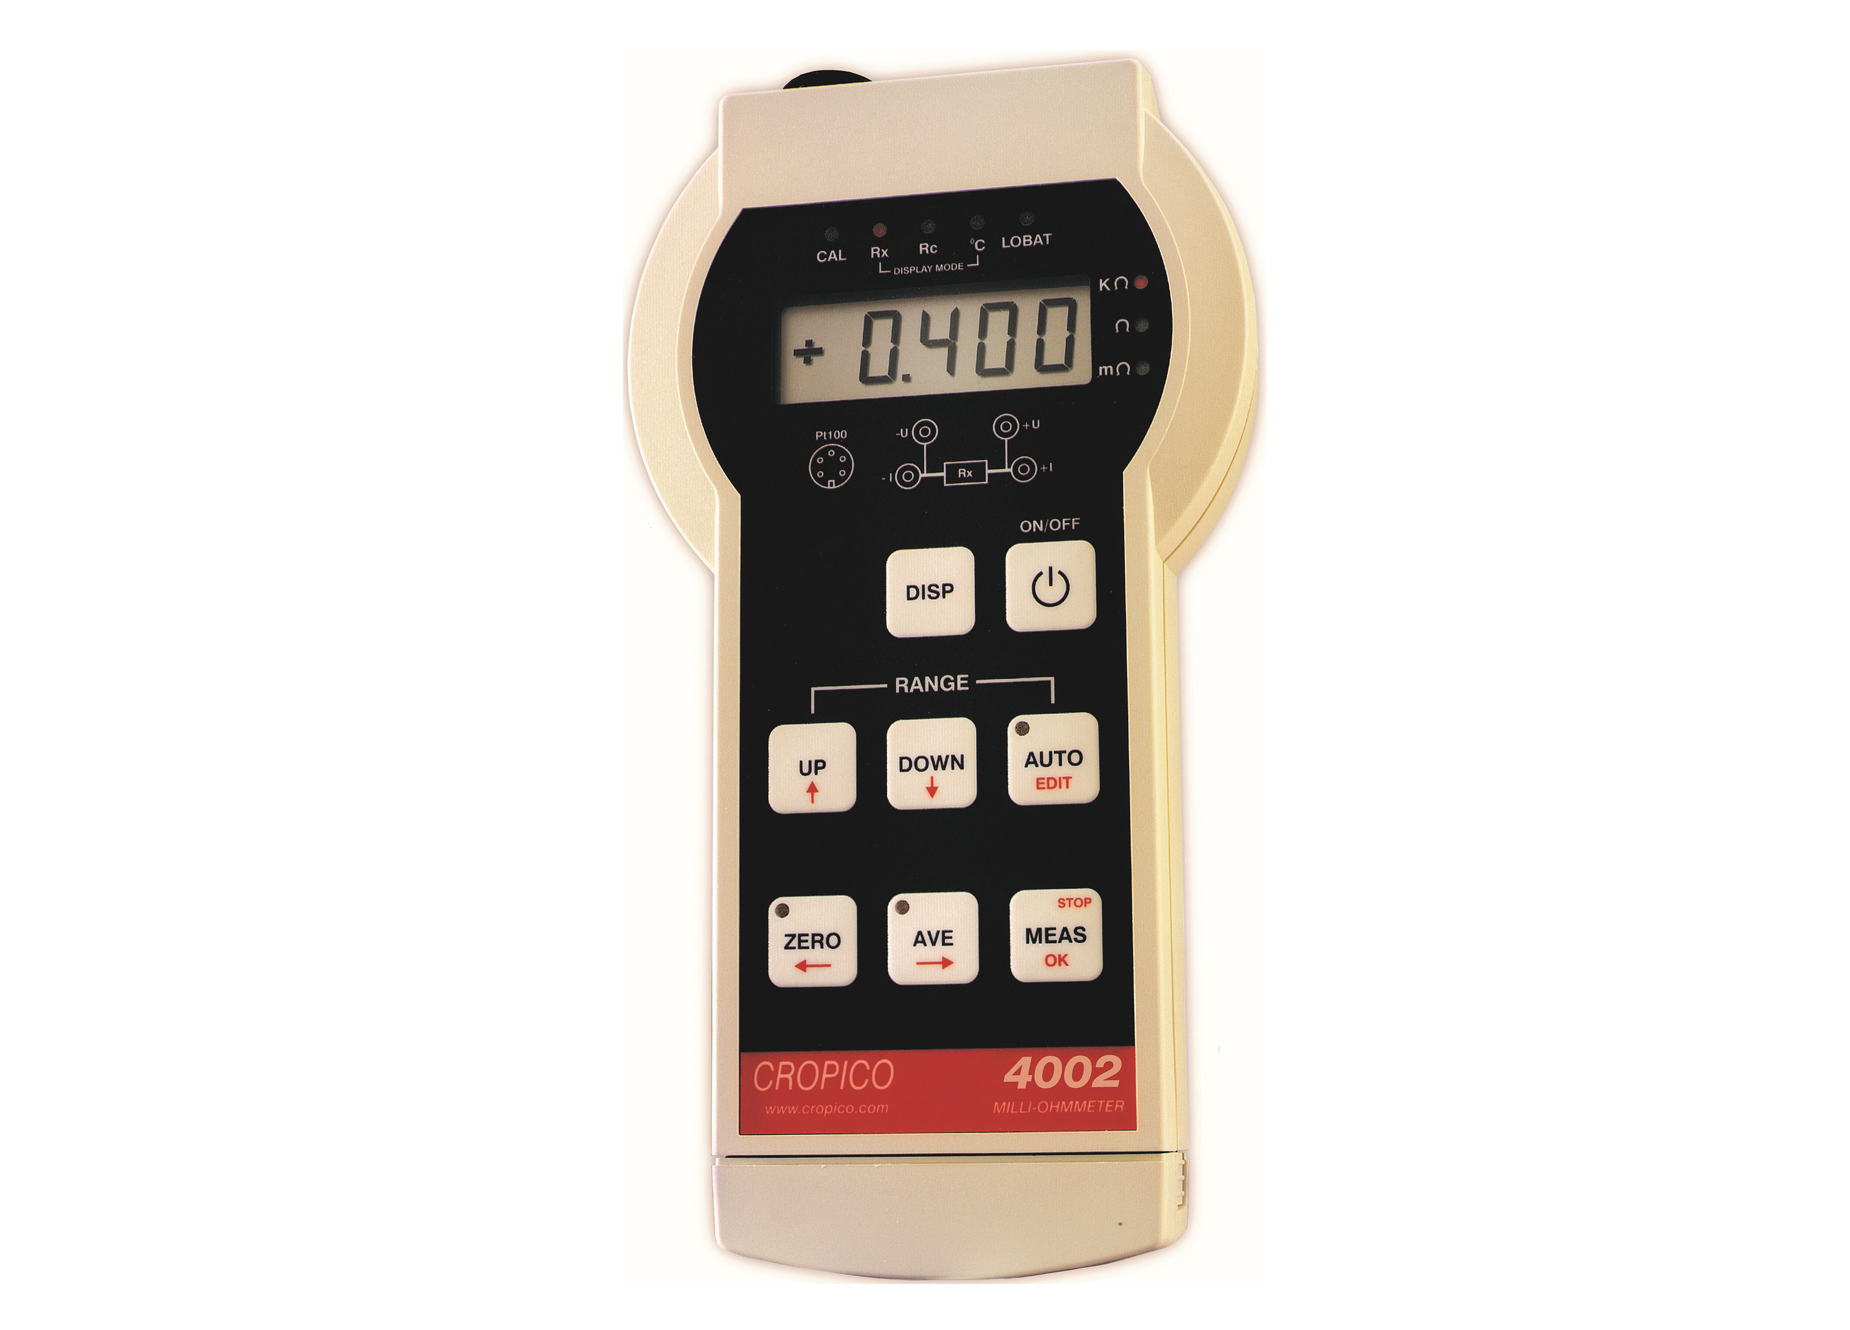 Cropico DO4000 series milliOhmmeter